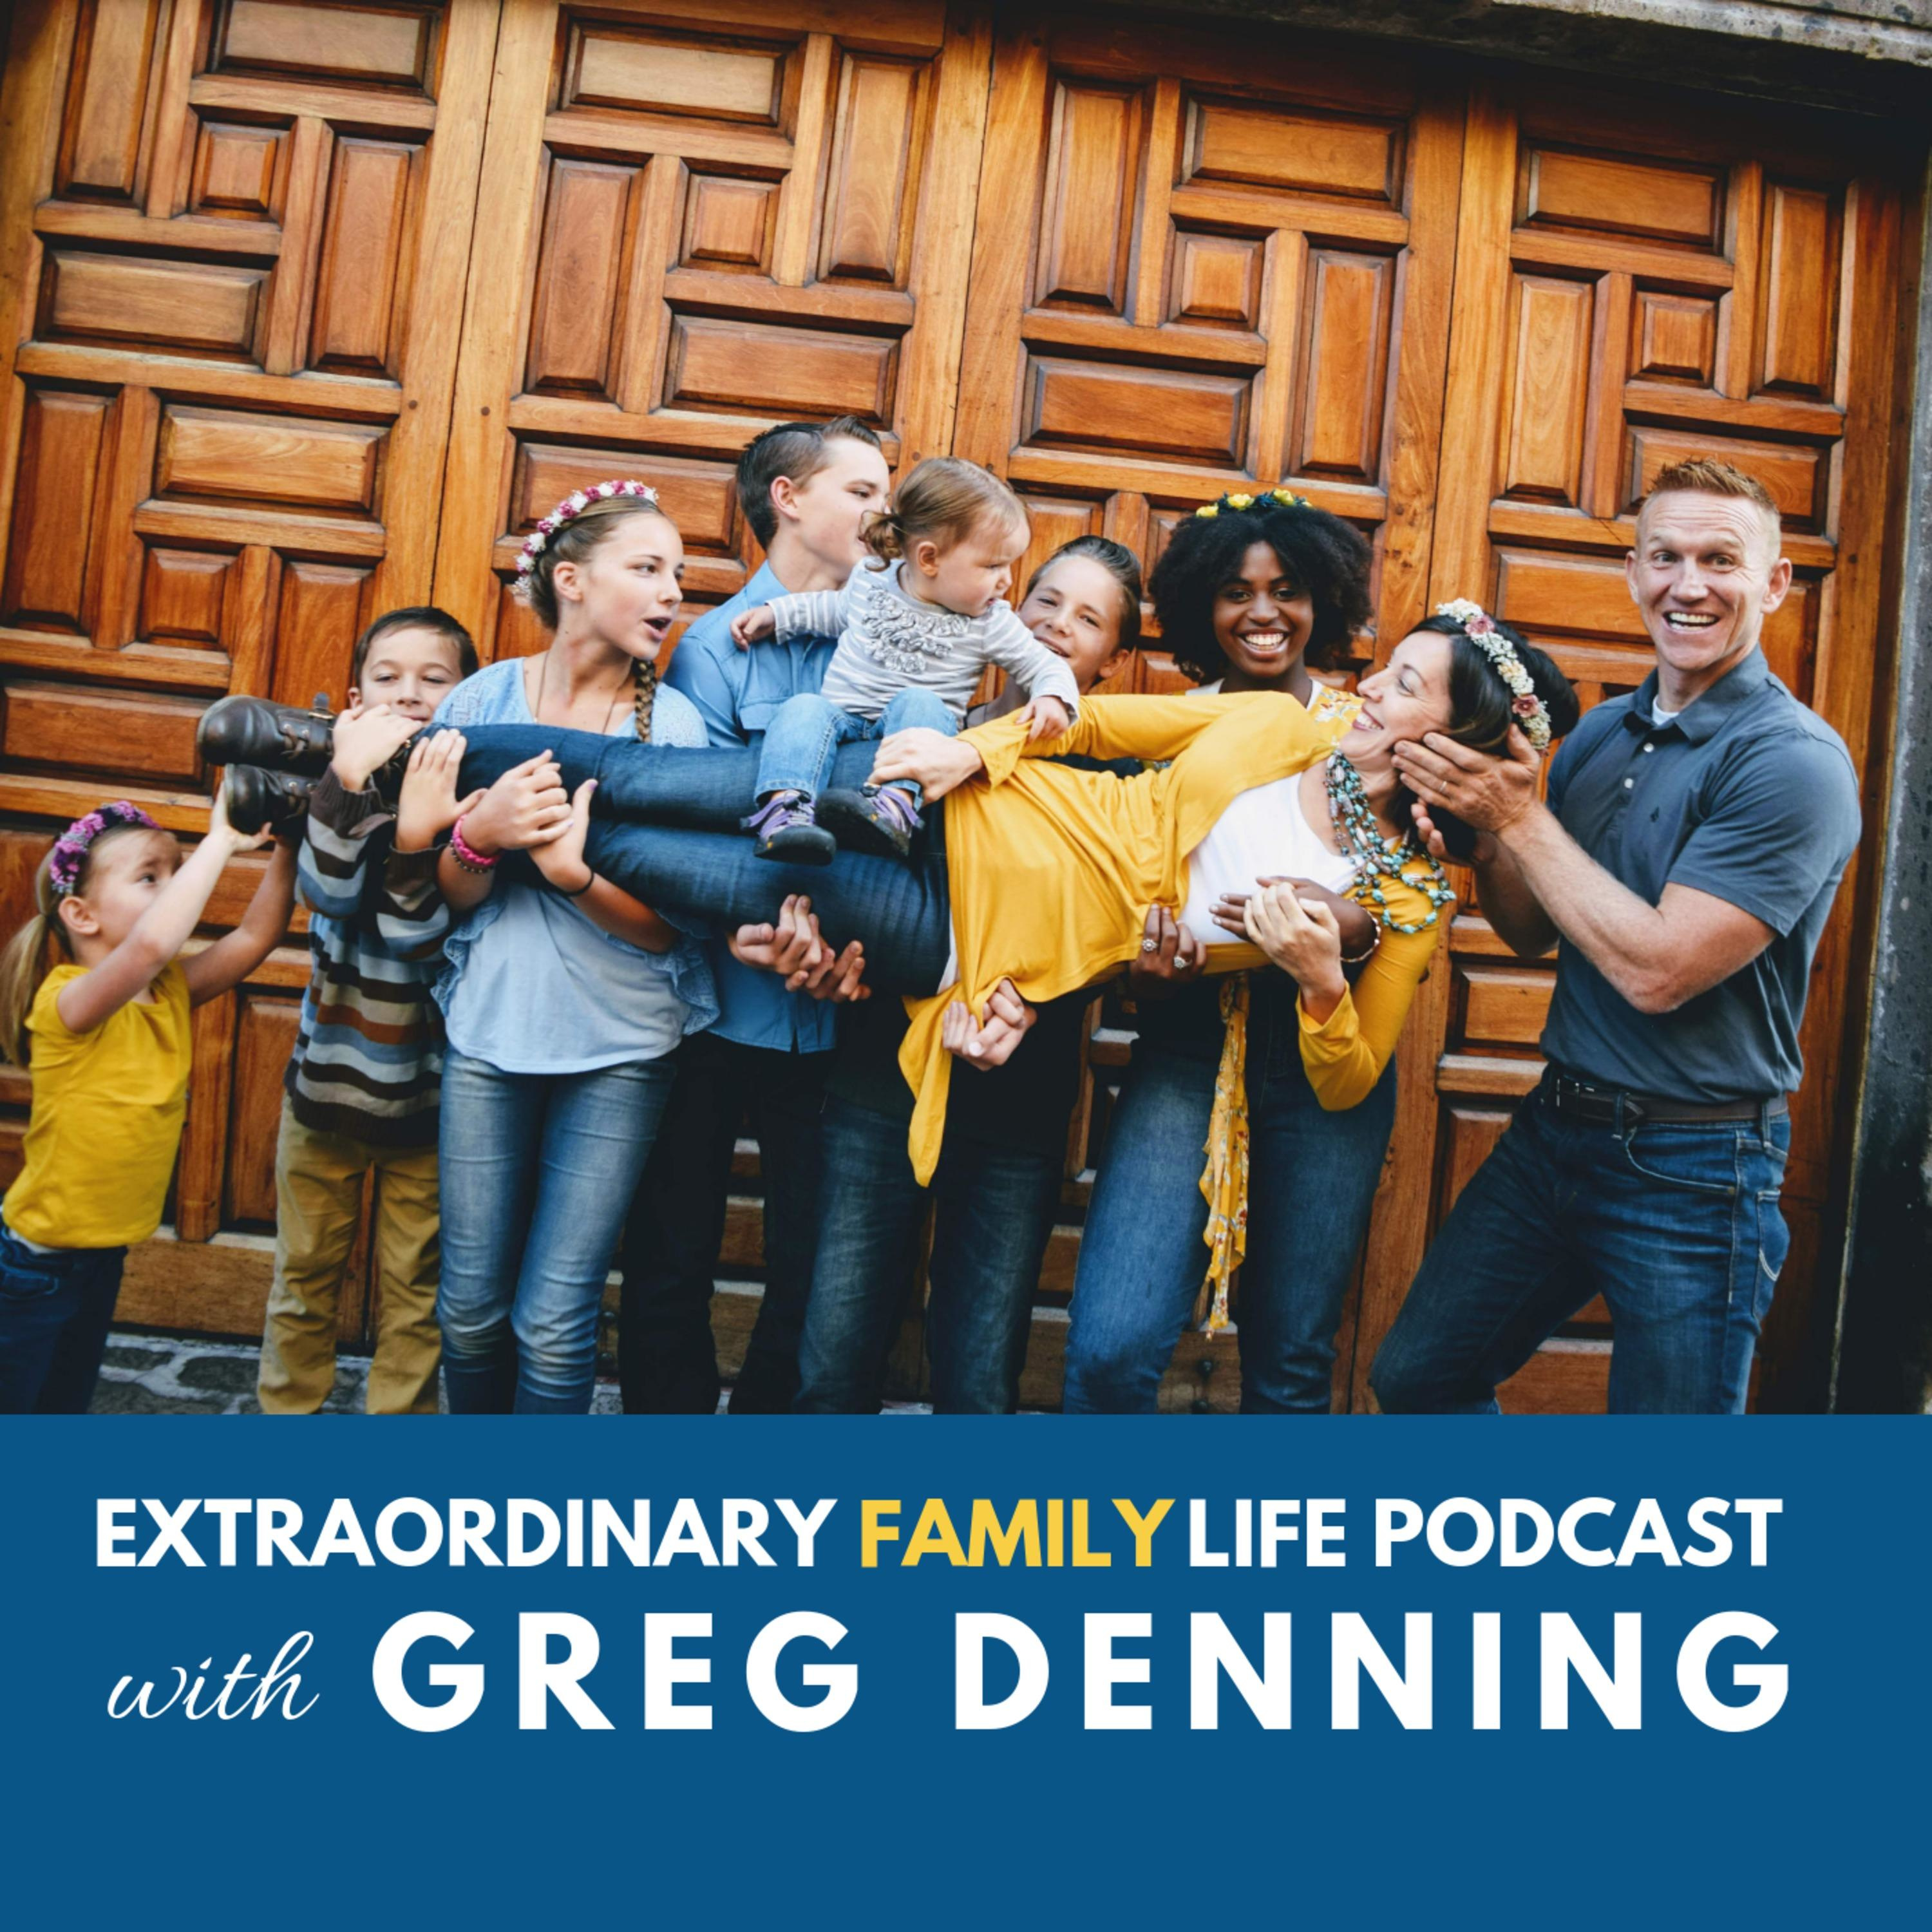 EXTRAORDINARY Family Life Podcast with Greg Denning